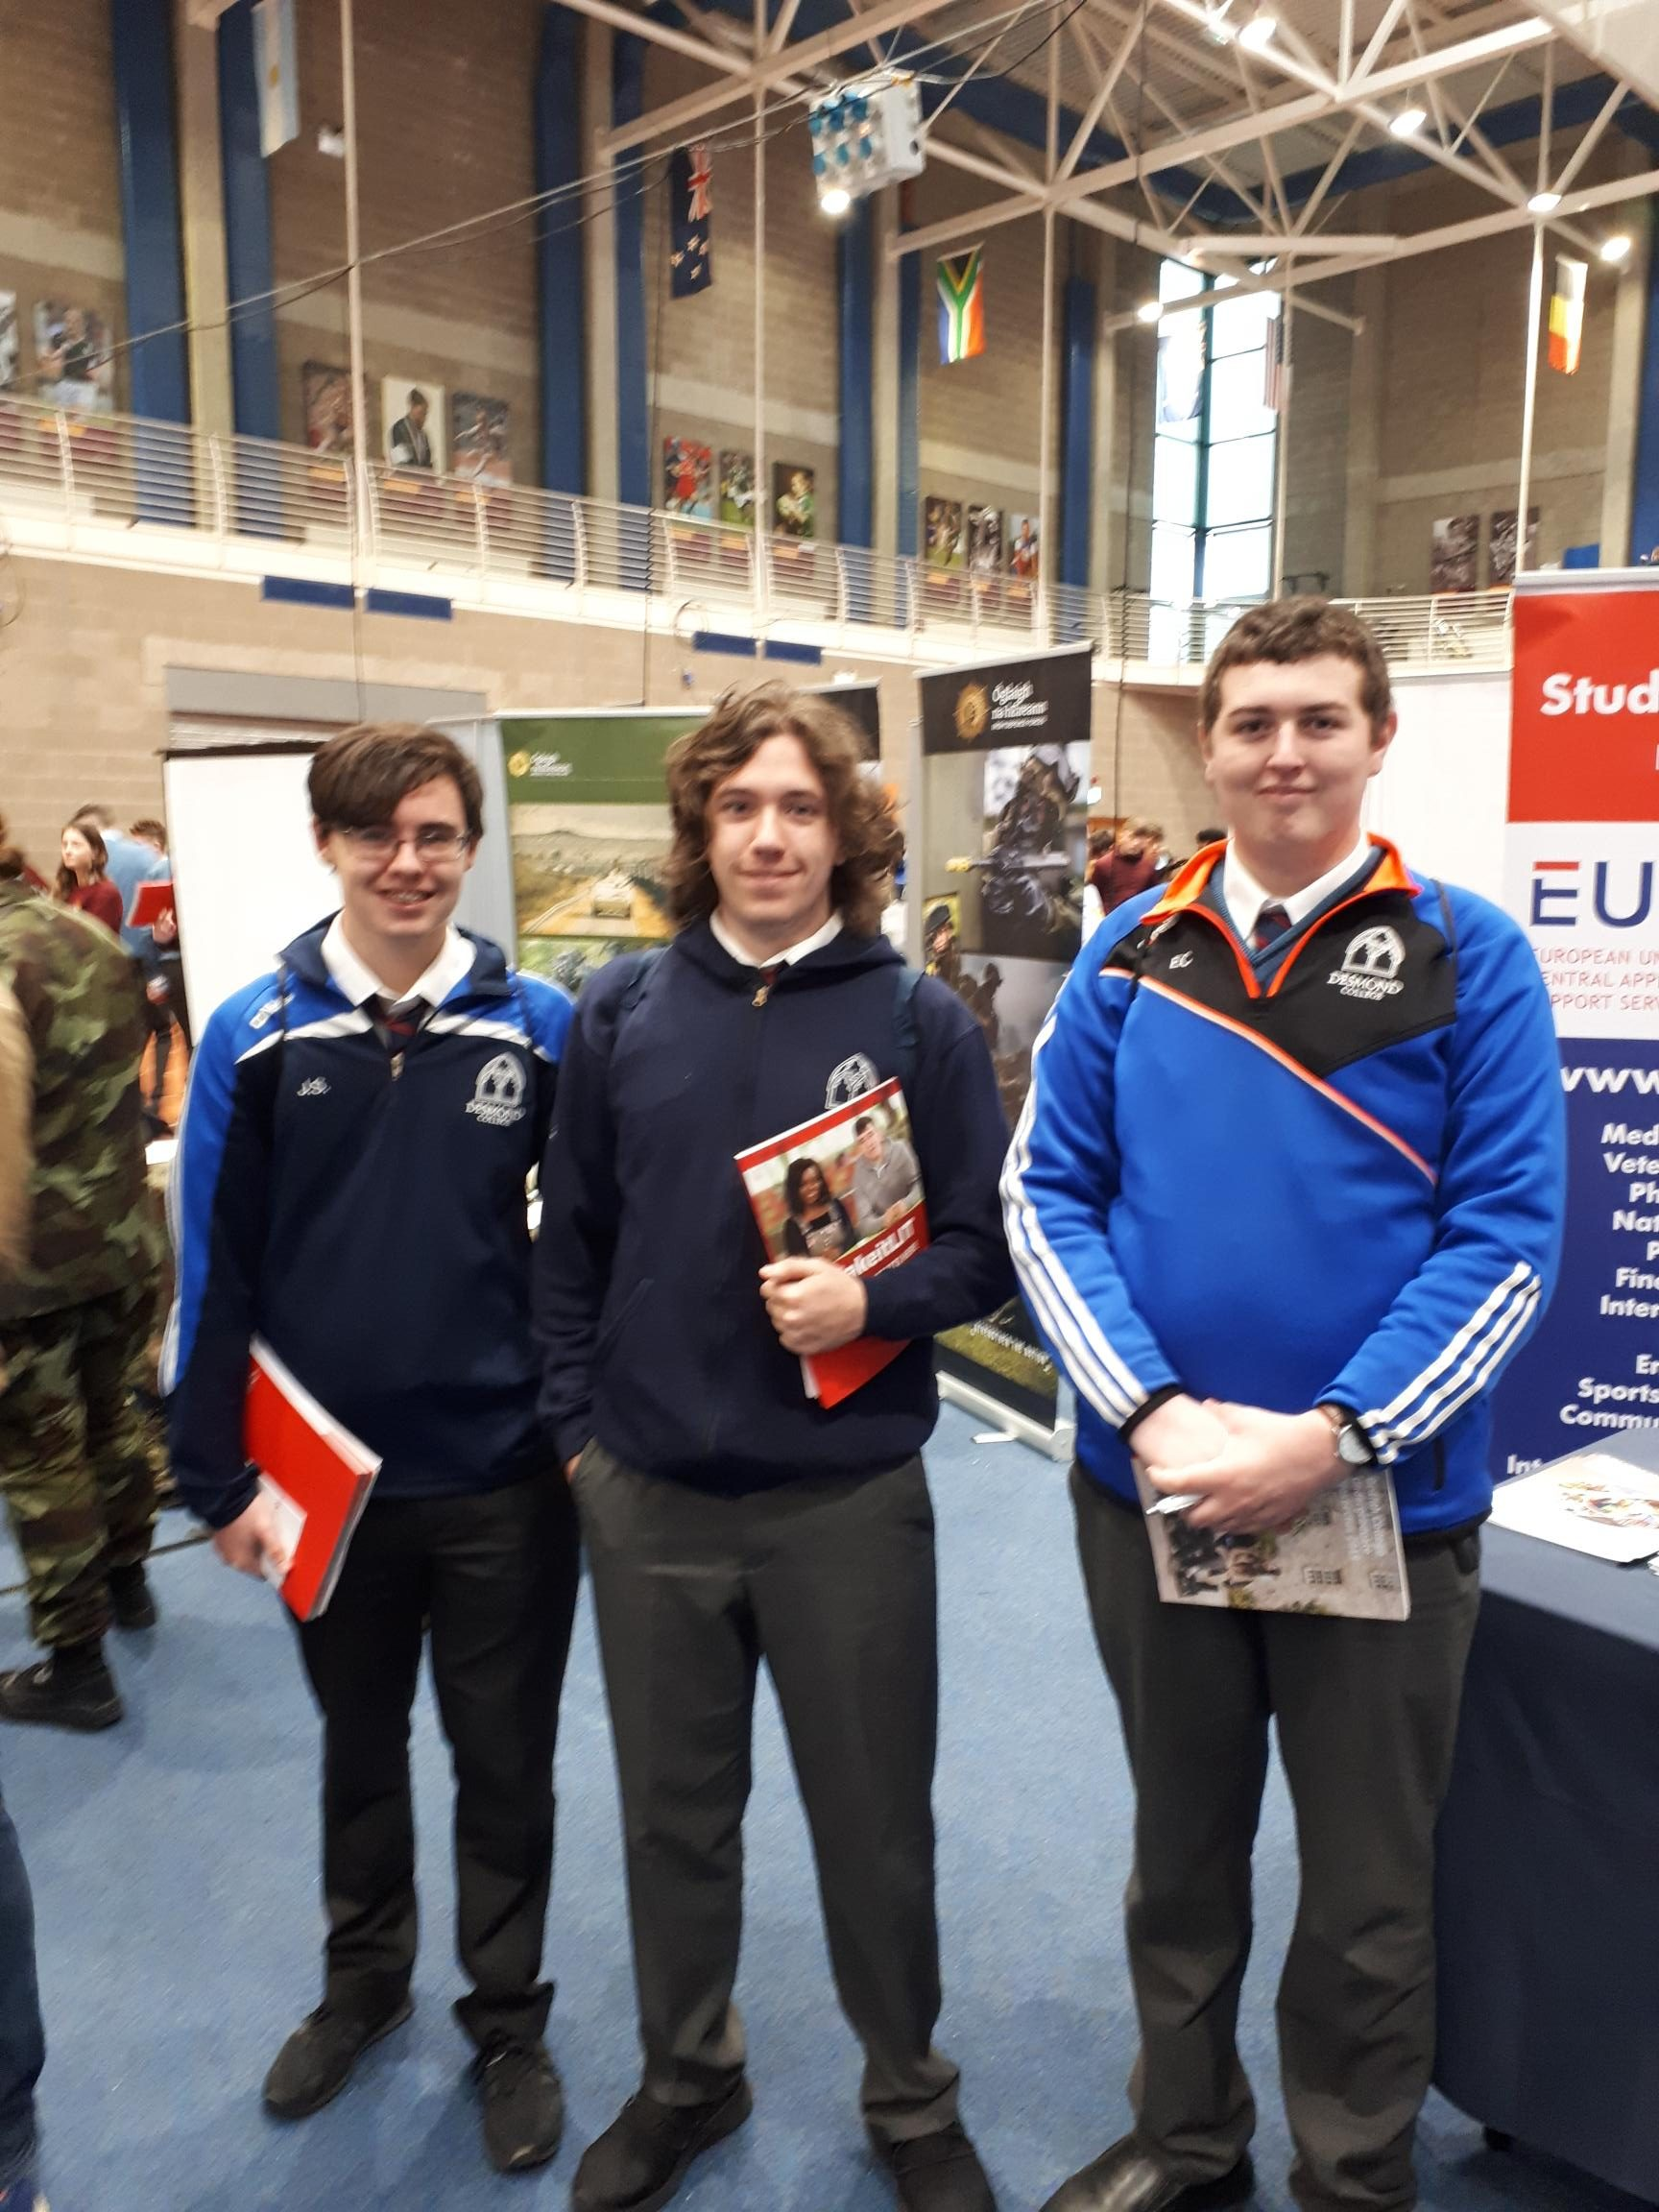 Sept 2018: Desmond College 5th year Students in University of Limerick at Careers Expo